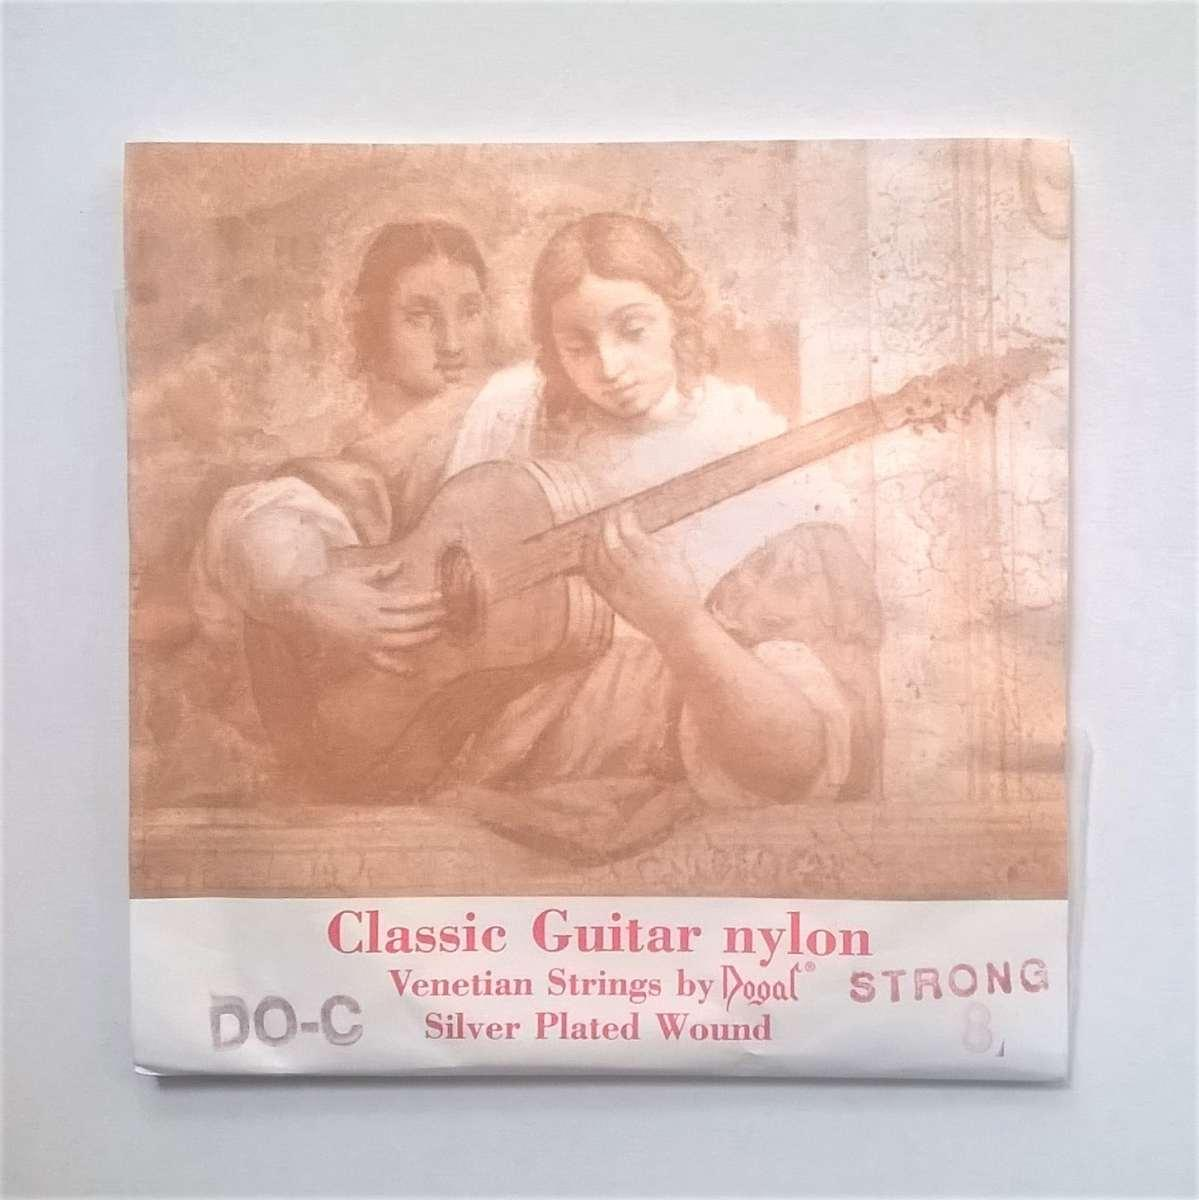 Dogal 8 corda (do) chitarra battente